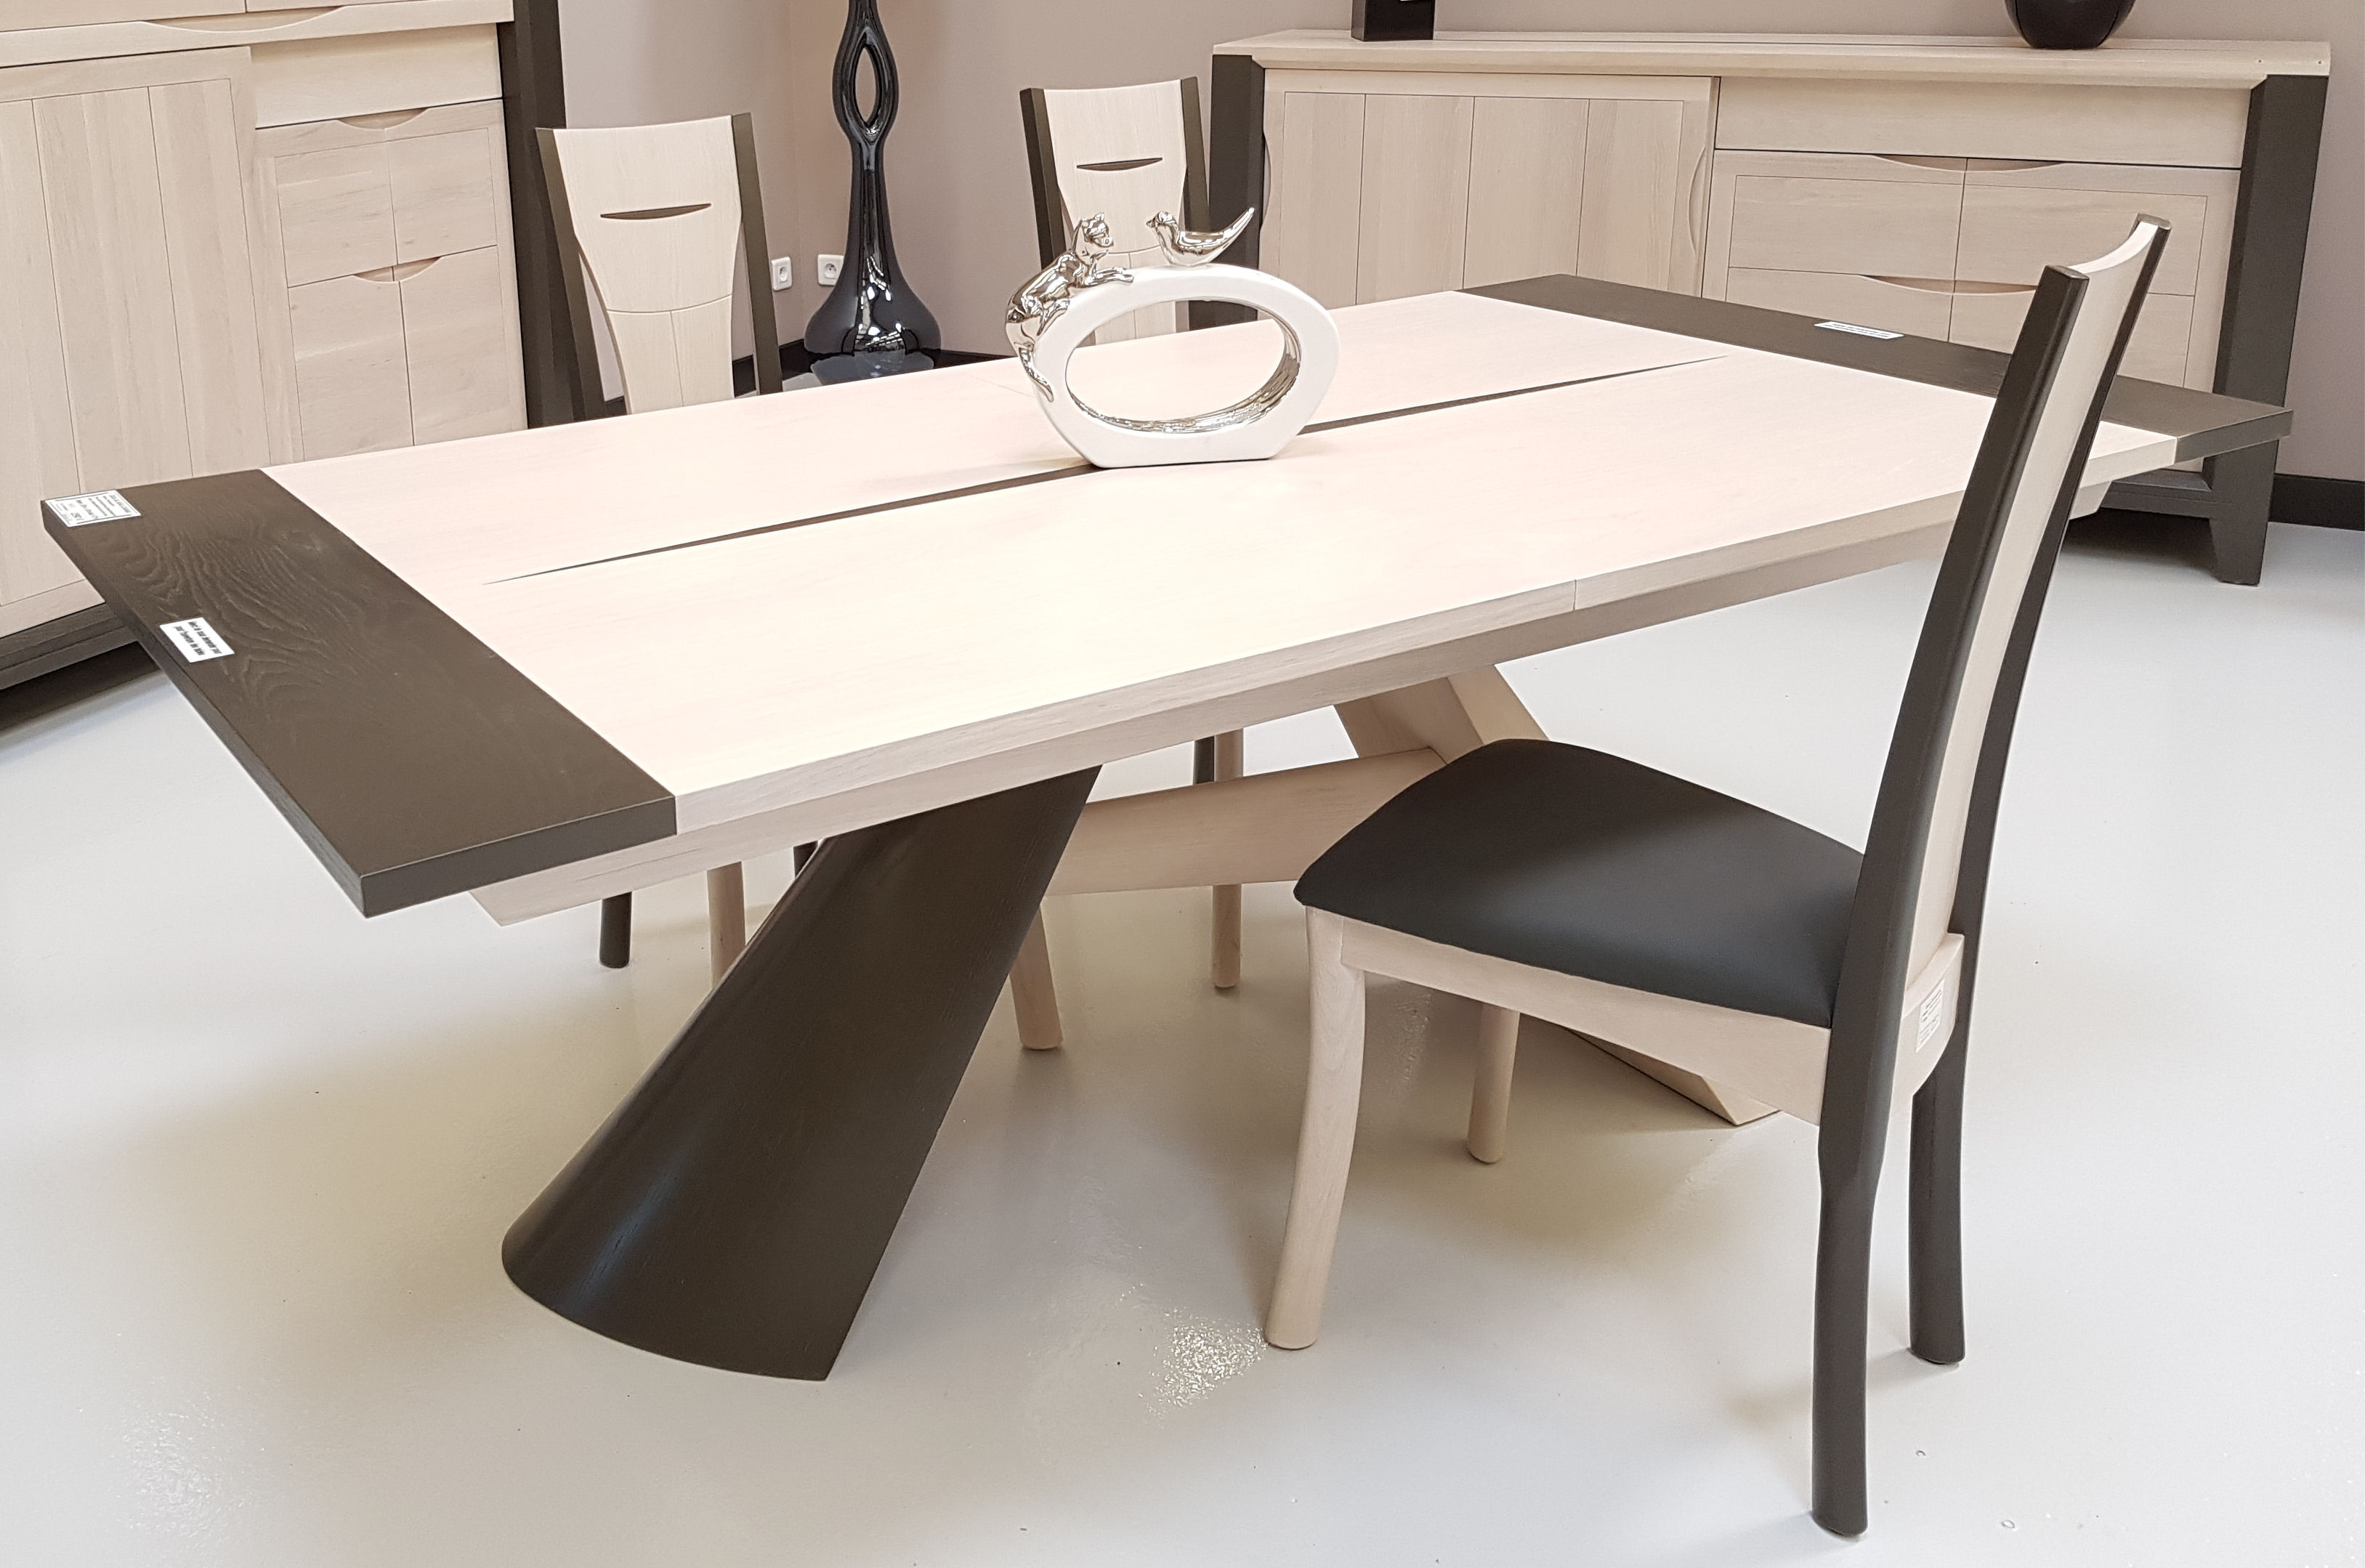 Table_Cevenne